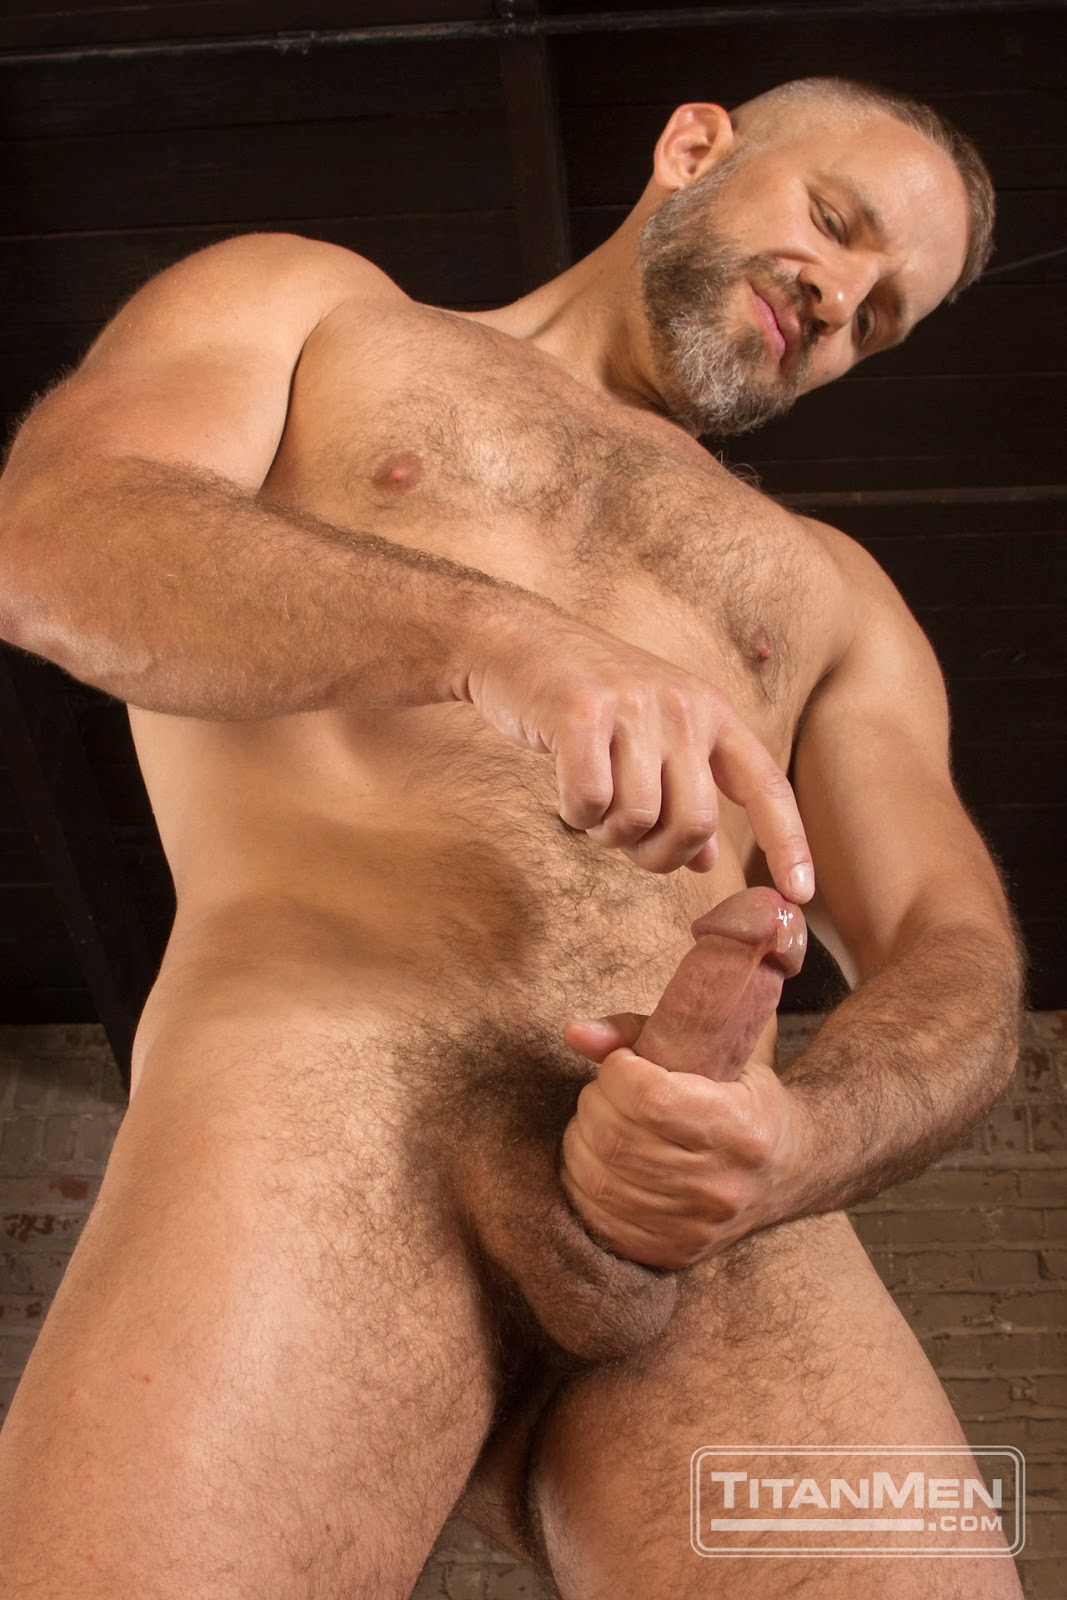 TitanMen Heavy Load DVD Big Cocks Gayrado